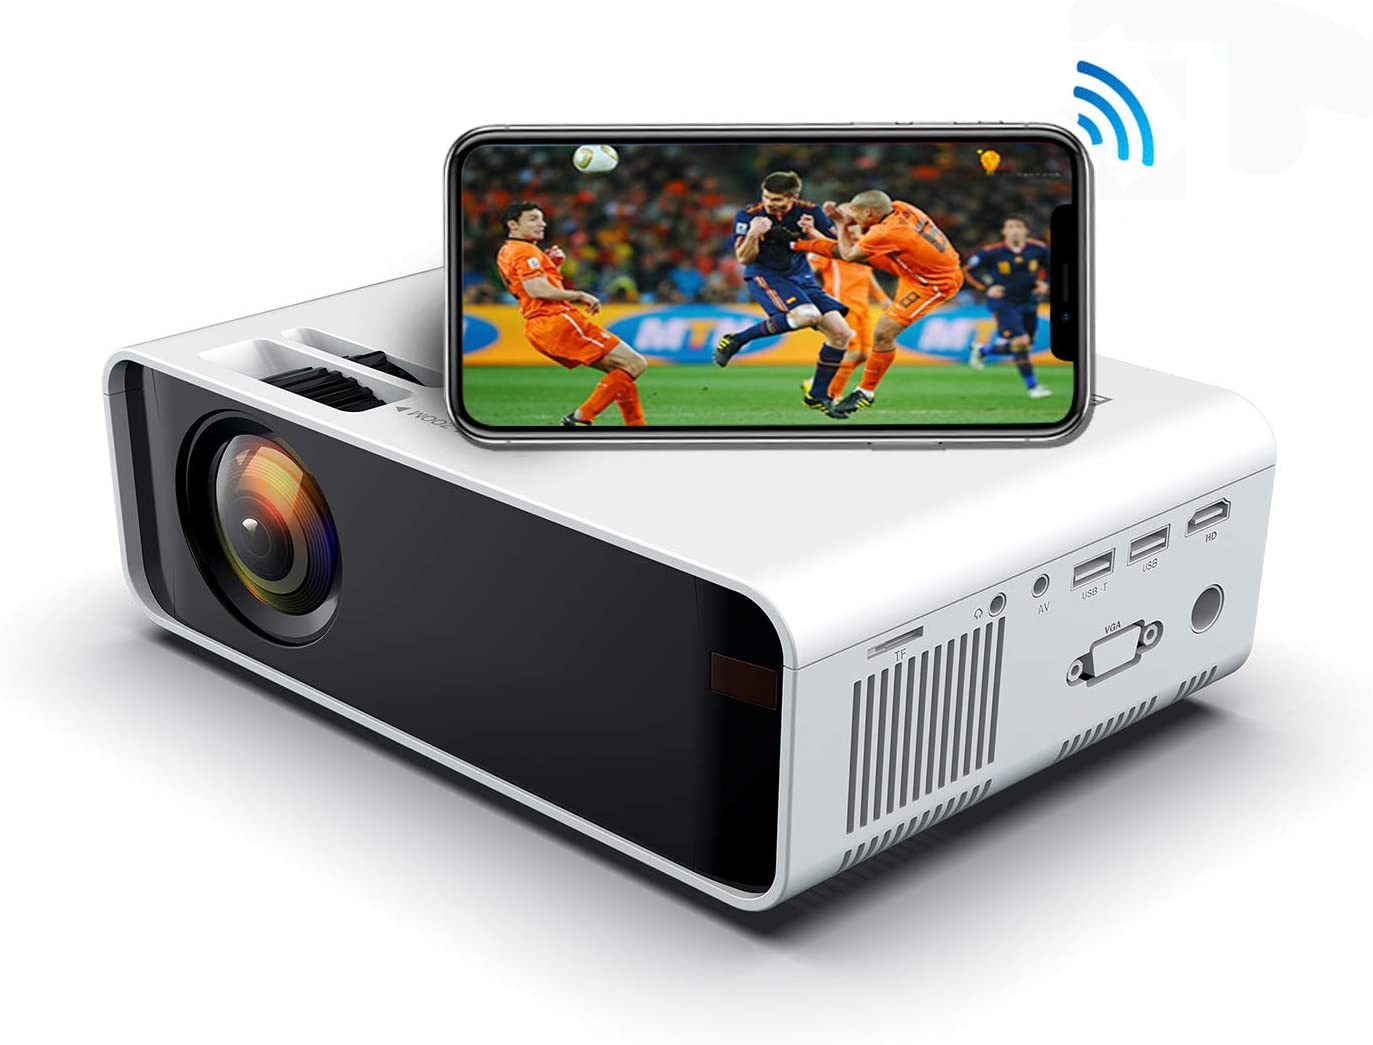 SOTEFE Mini LED Projector Portable 4000 Lumens-WiFi Video Projectors 1080P Full HD for iPhone Samsung Smartphone Wireless Projector HDMI 55000 Hours Multimedia 4K Home Projector Office Theater Movie